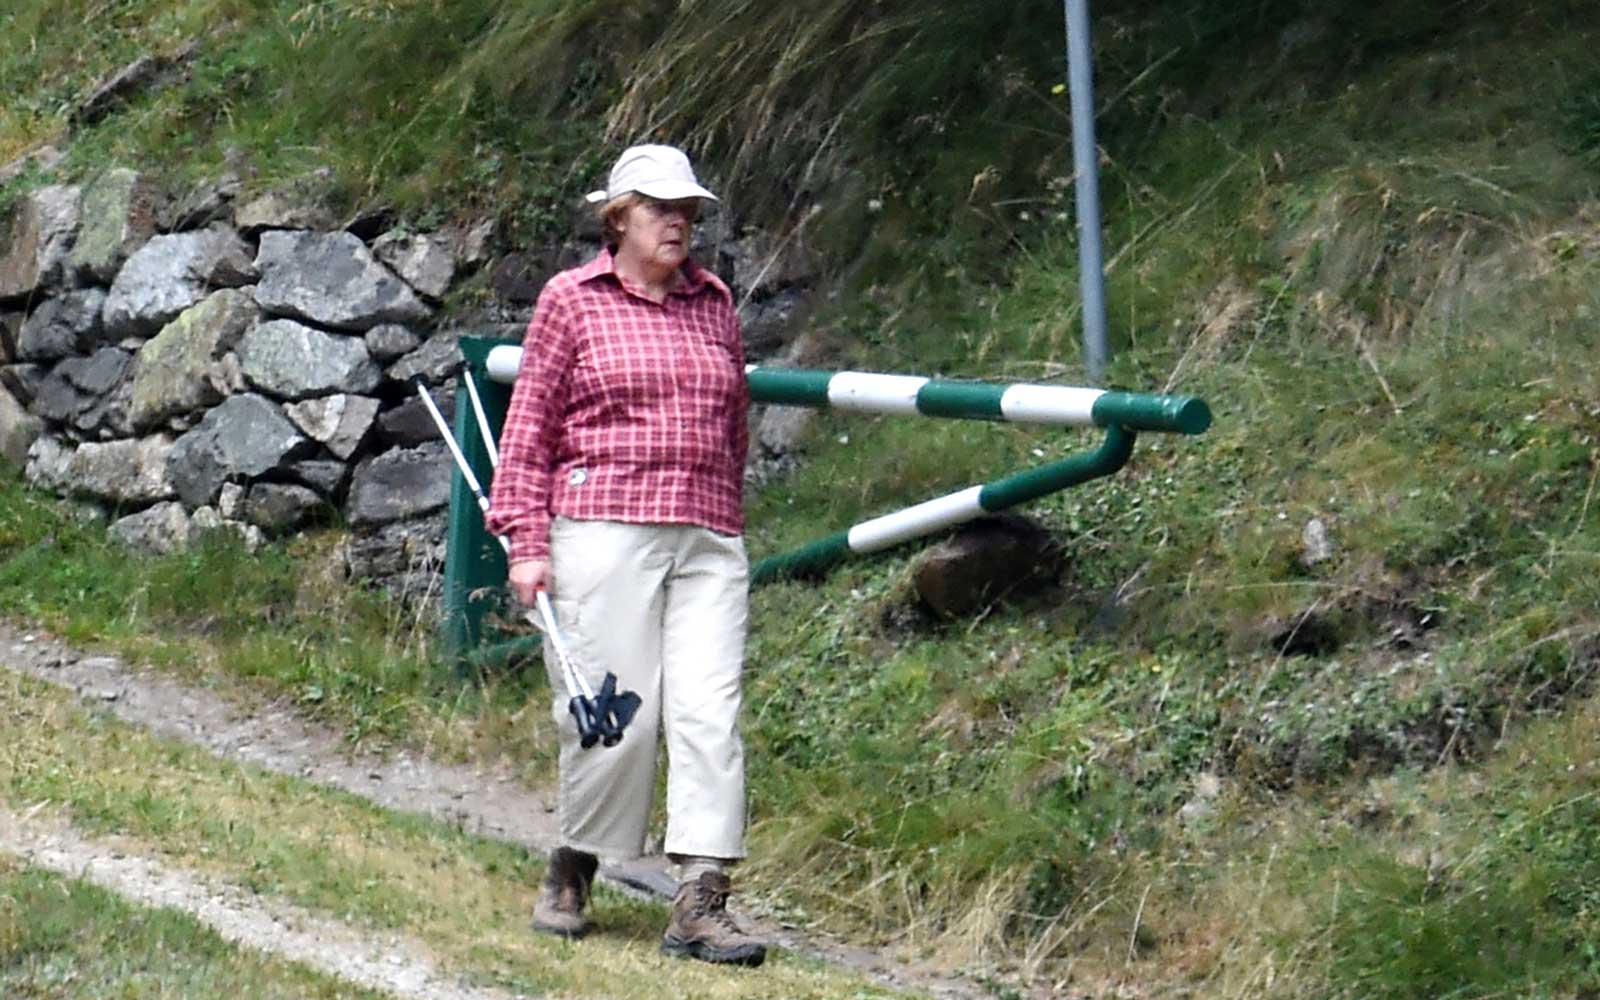 Angela Merkel Has Been Wearing the Same Vacation Outfit for the Last Five Years